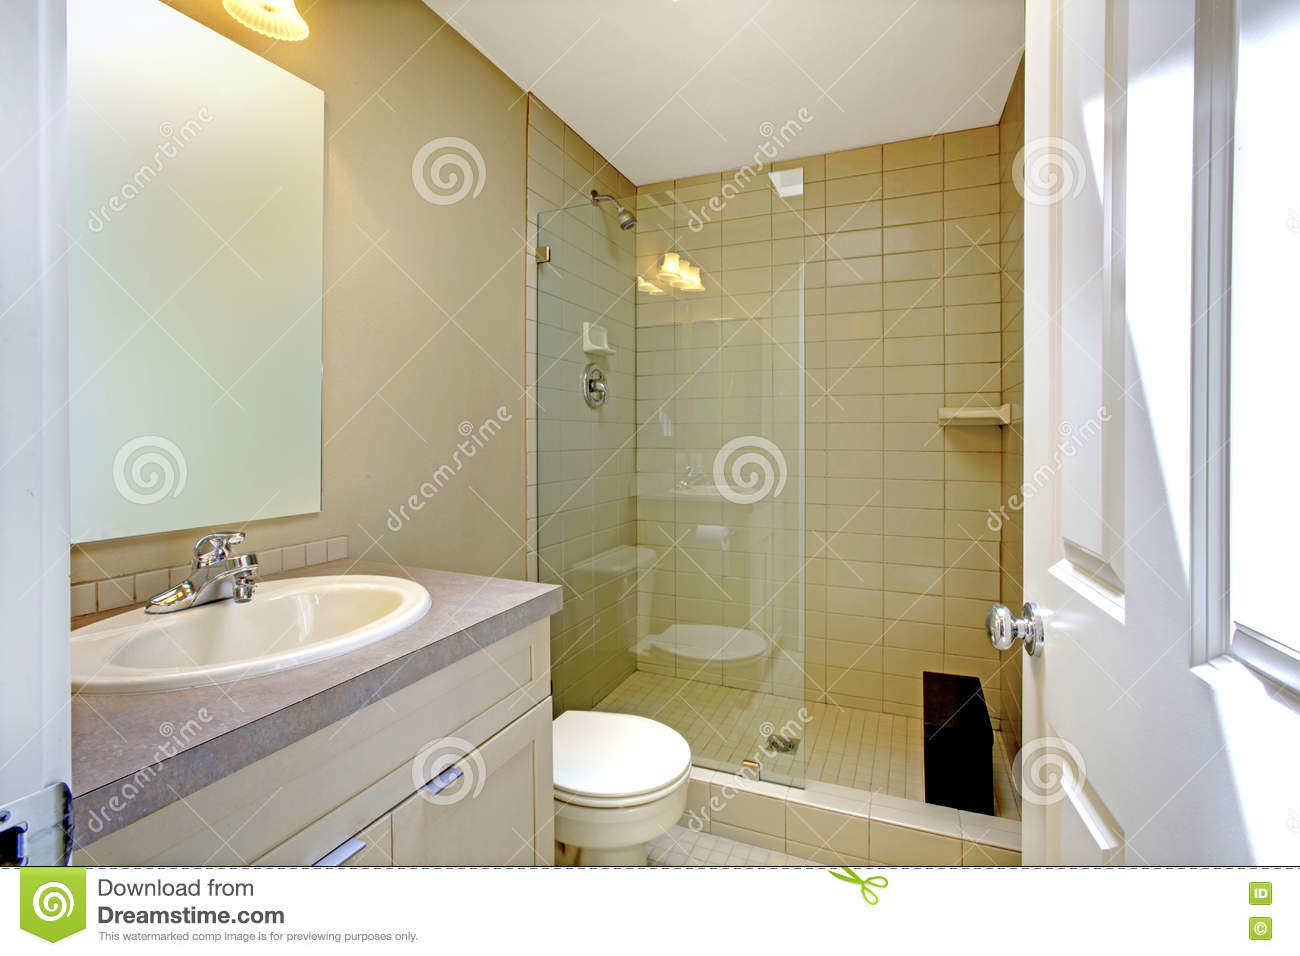 Cabinet D Architecte Nice nice creamy bathroom interior with glass shower and white